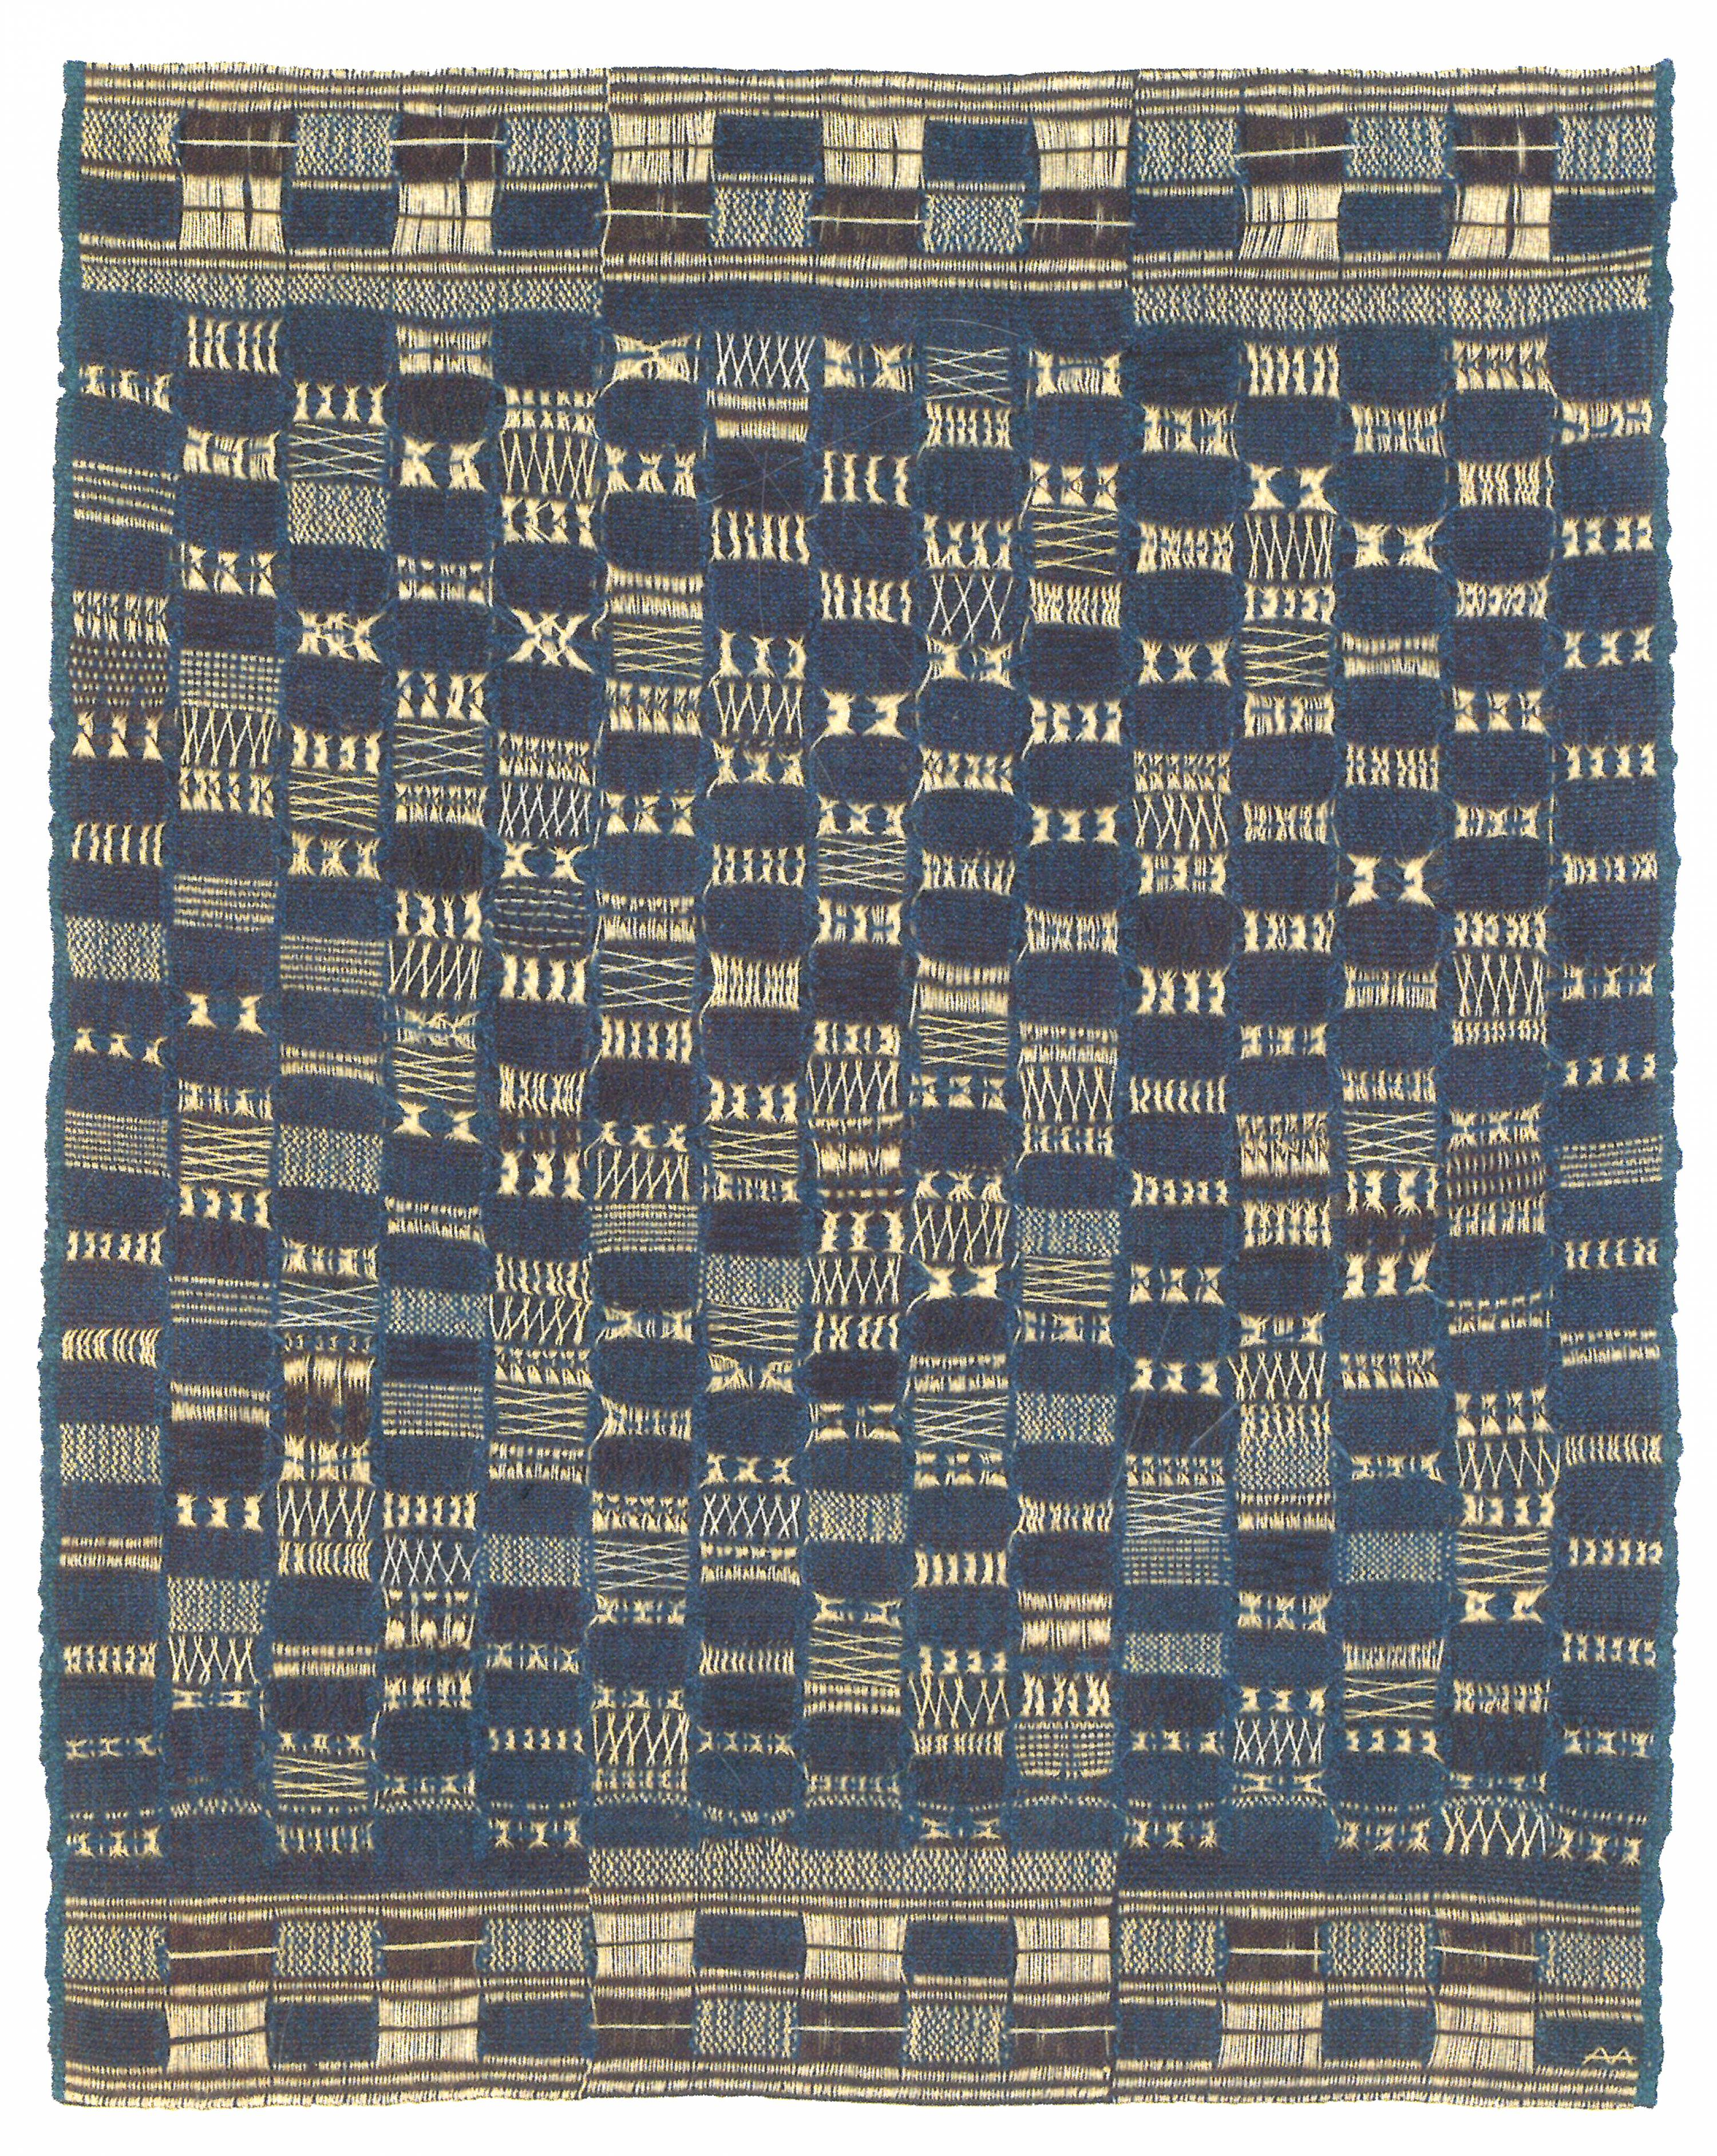 Anni Albers, Thickly settled, 1957, ©Yale university art gallery, New Haven